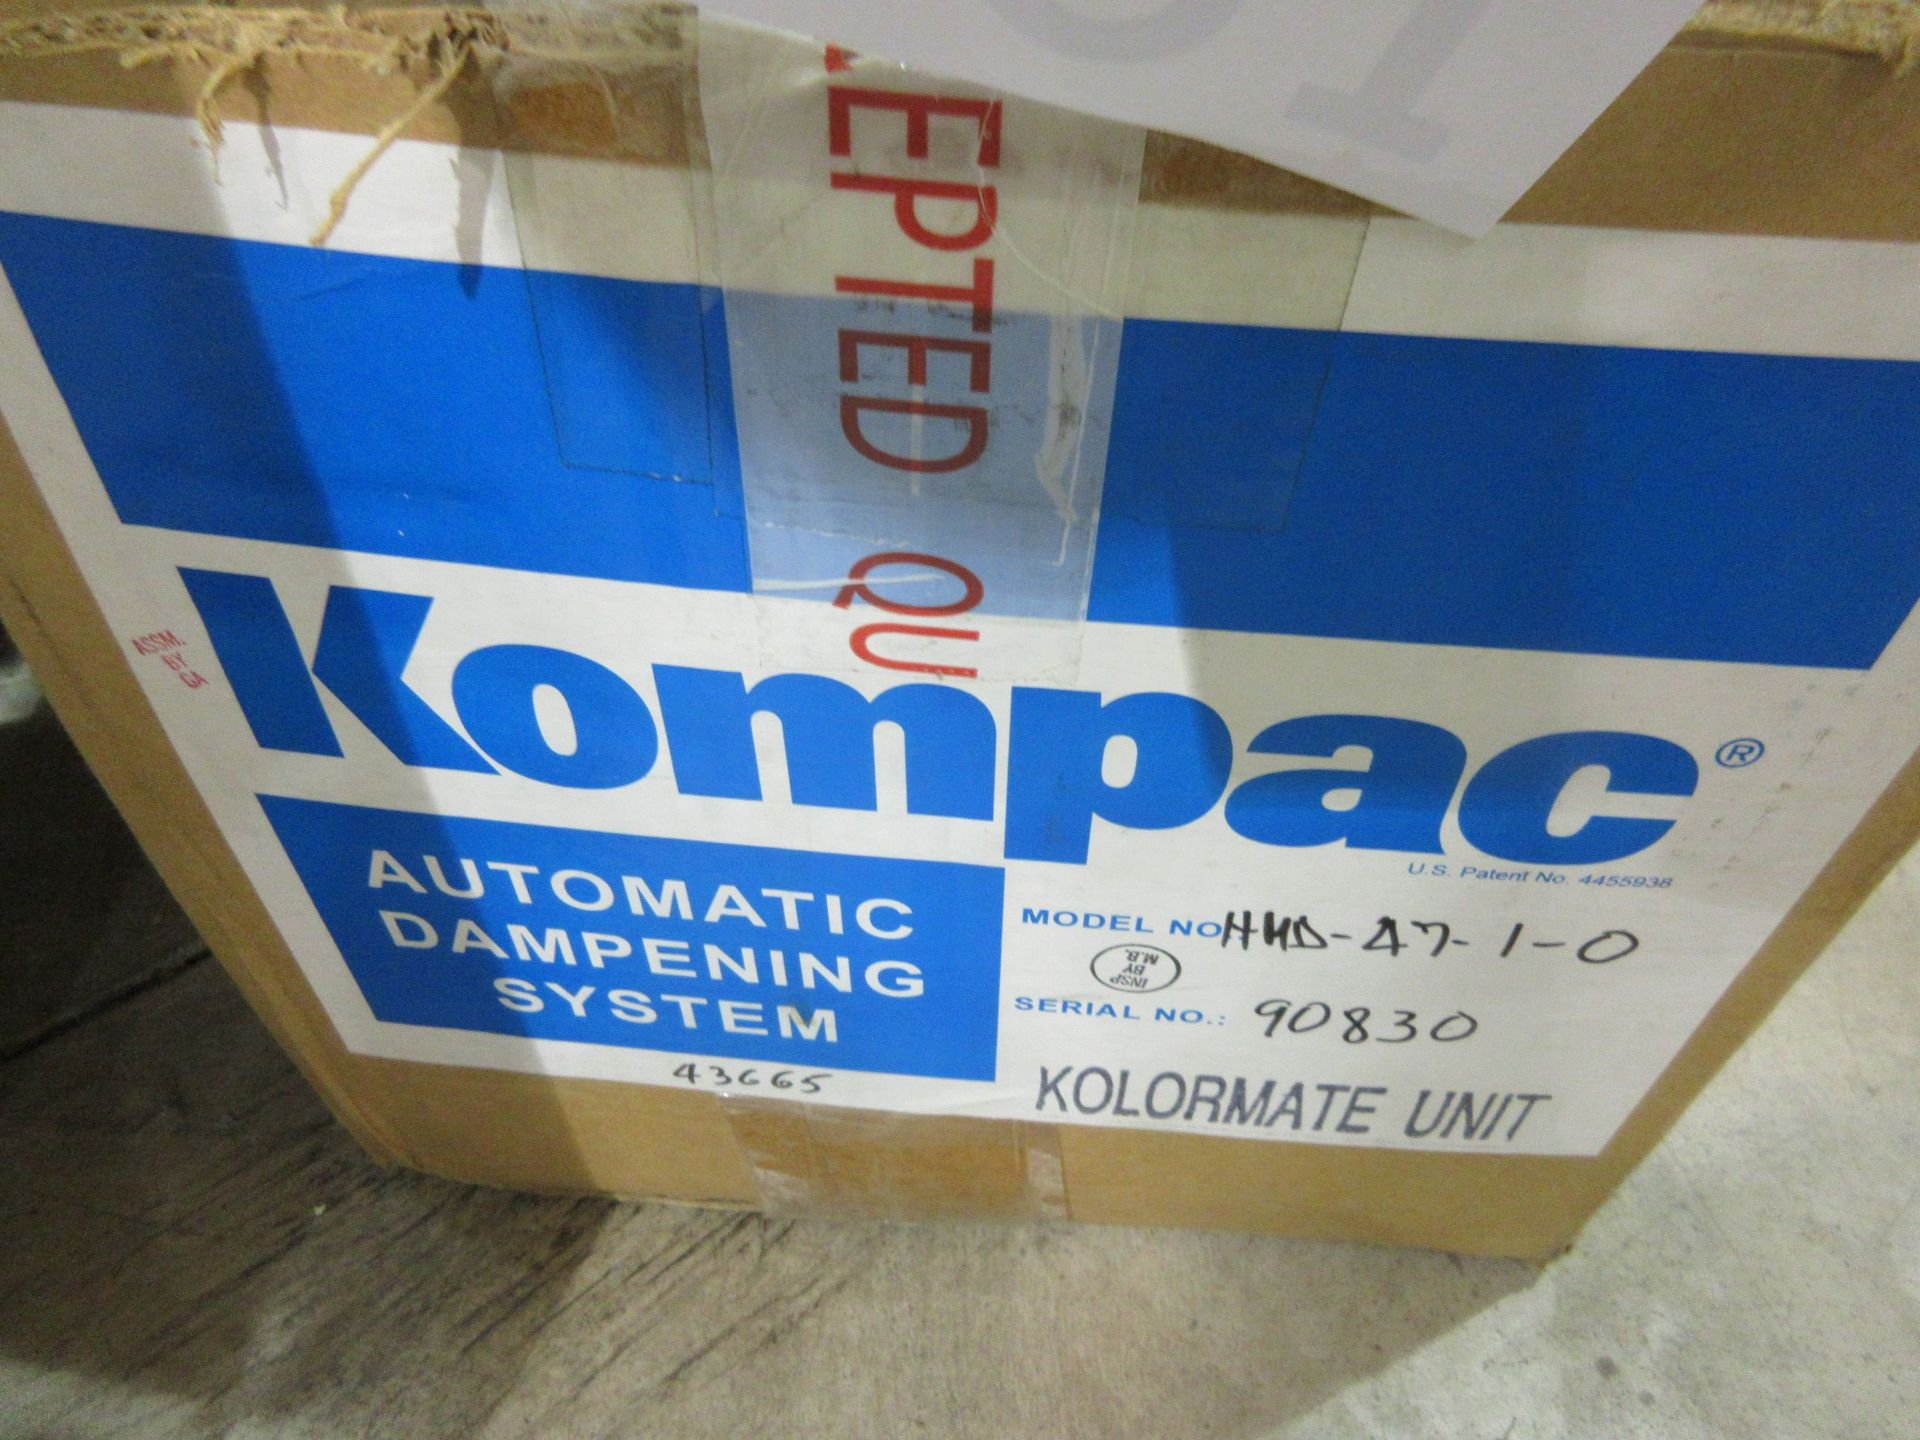 GRAPHIC WHIZARD auto creaser (mod: 335 A+)/KOMPAC automatic dampening system (mod: sp430) (AS IS) - Image 4 of 4